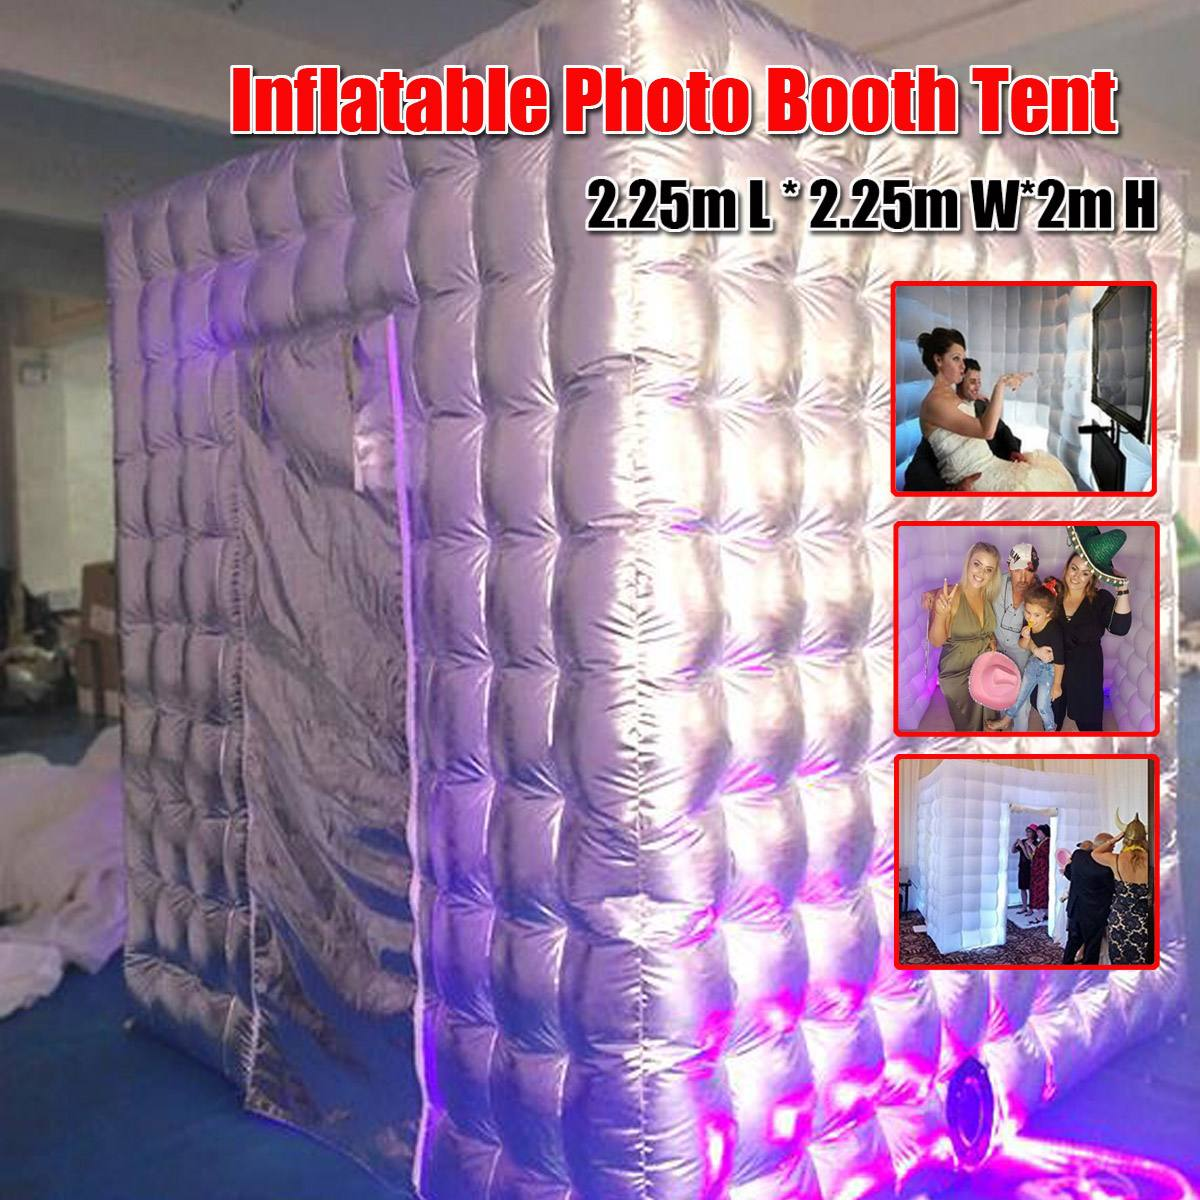 Inflatable Photo Booth Tent Box Props for Wedding Birthday Party Exhibition Photography Studio 2.25m * 2.25m*2m